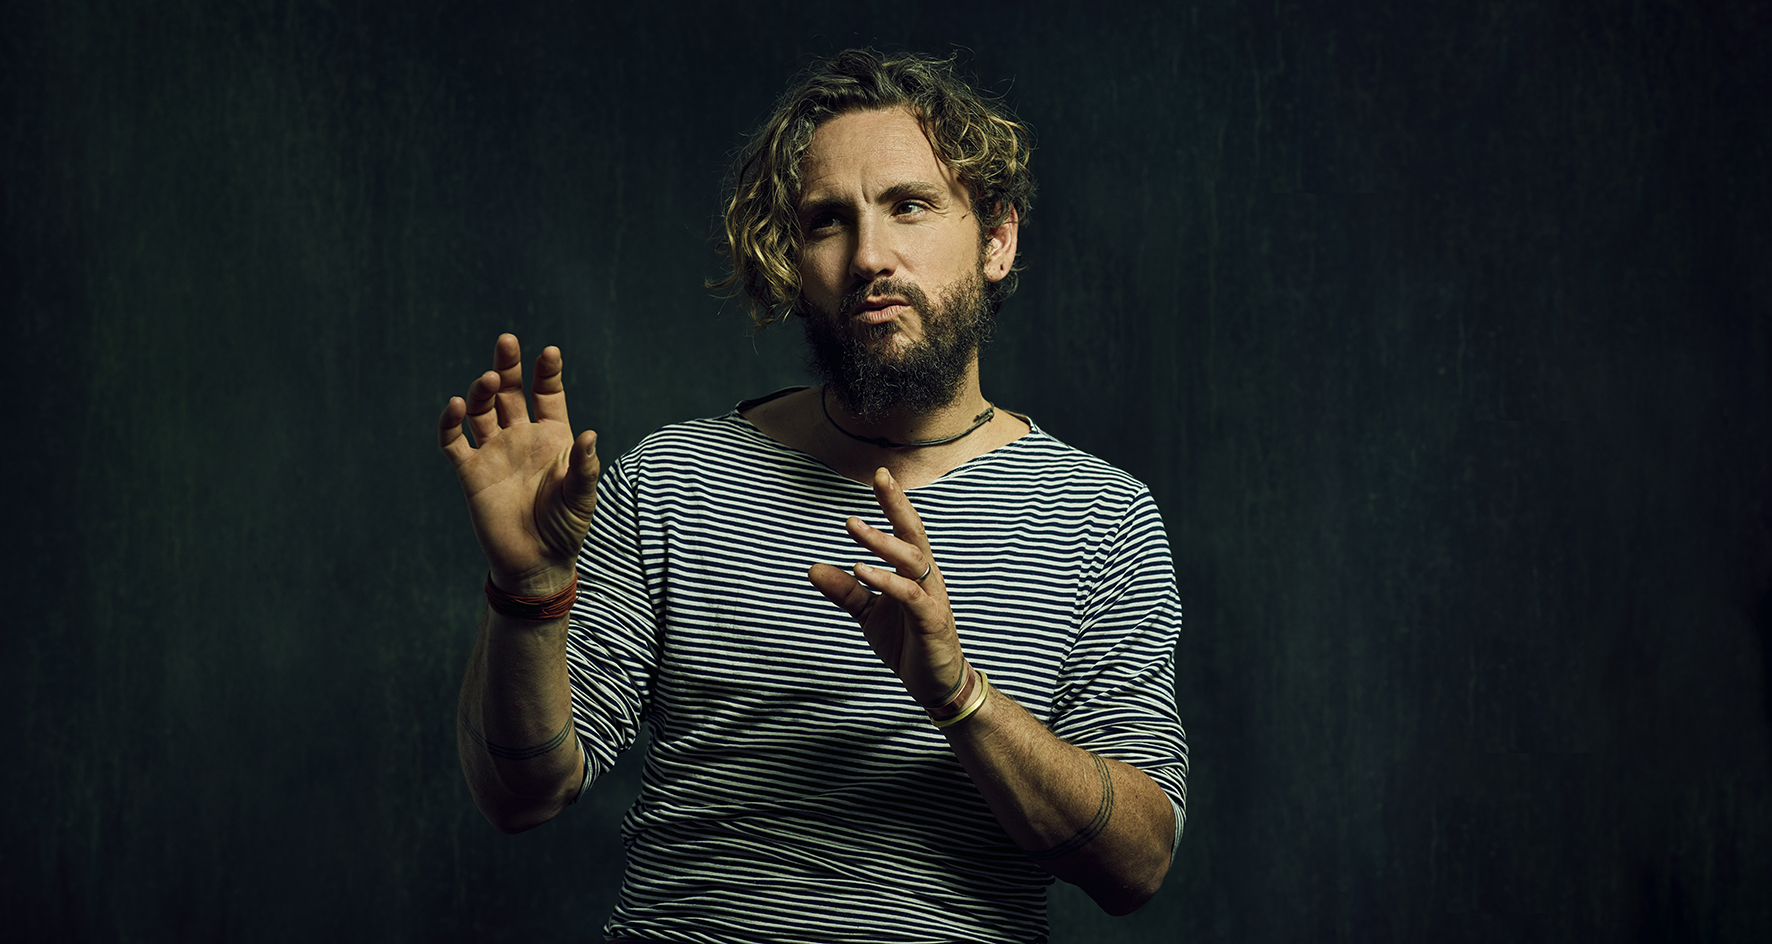 John Butler adds Canberra show to tour and boy is he excited about it